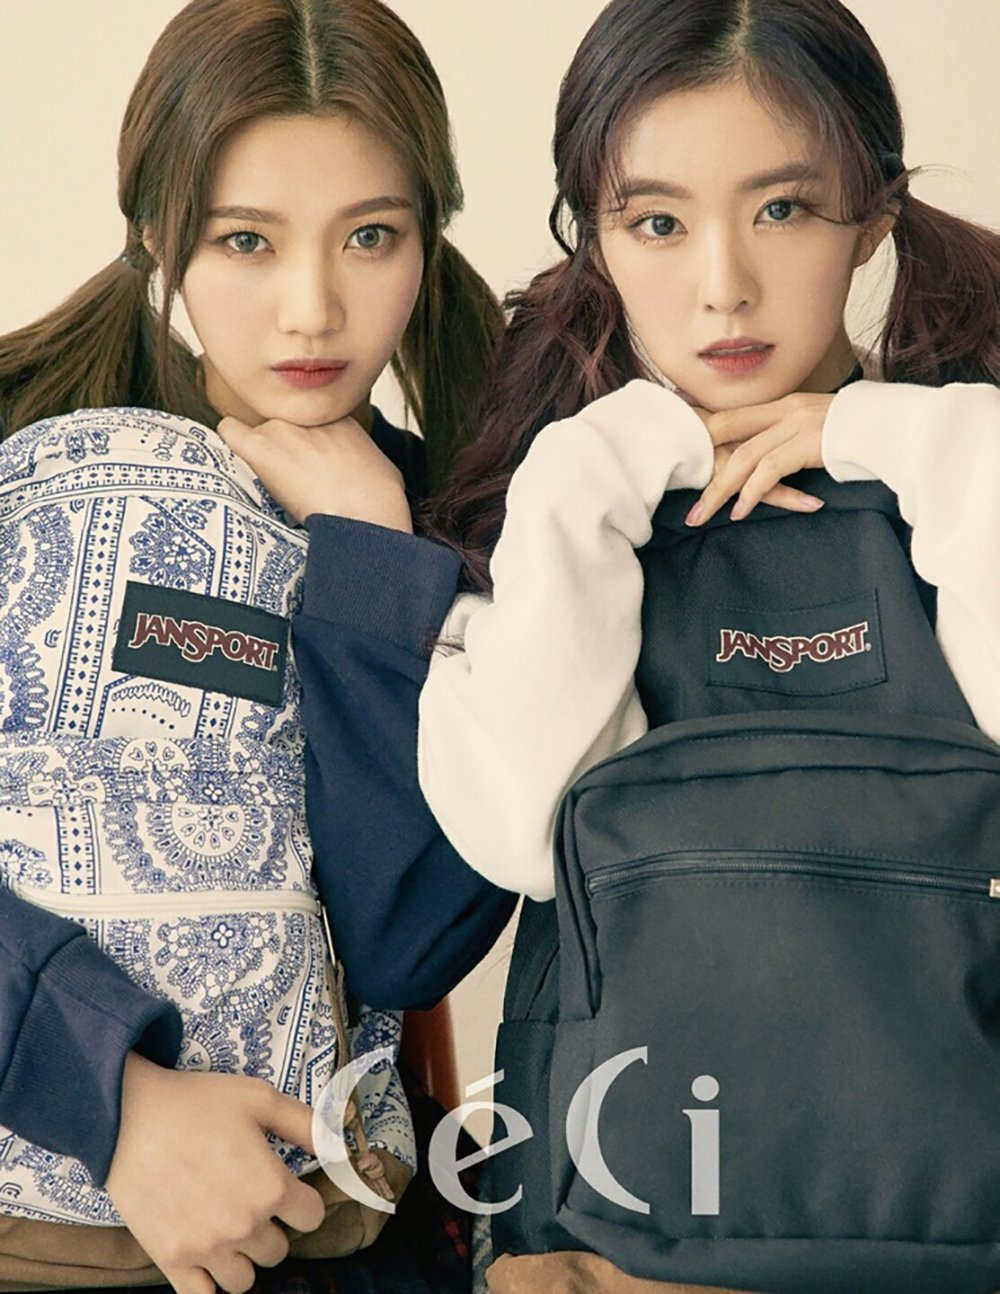 Irene-Joy-RV.jpg